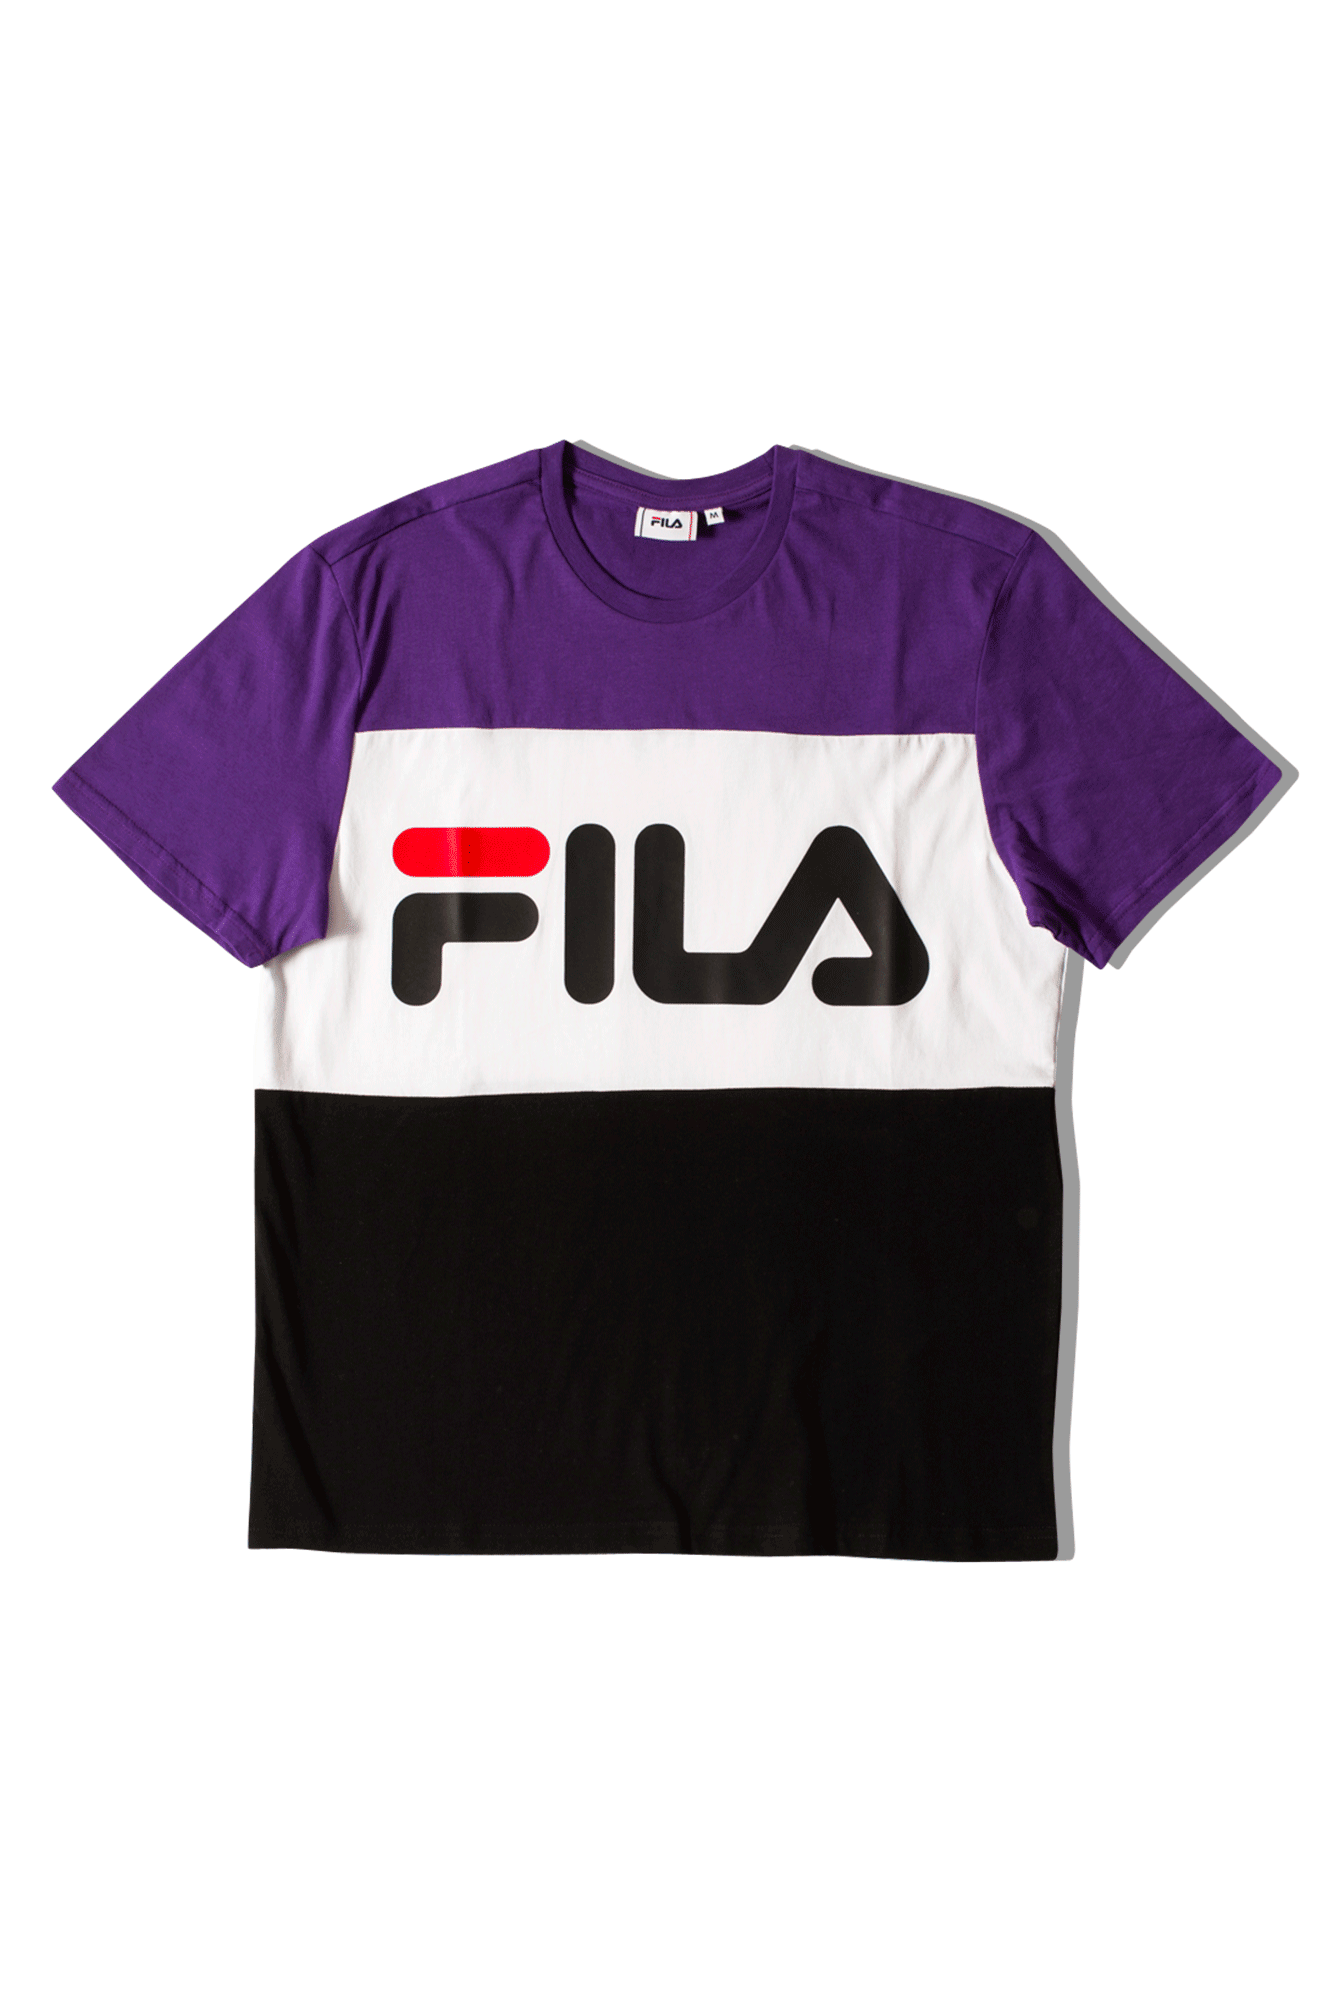 Fila T-Shirts Day Tee Black 681244A178#000#C0010#S - One Block Down